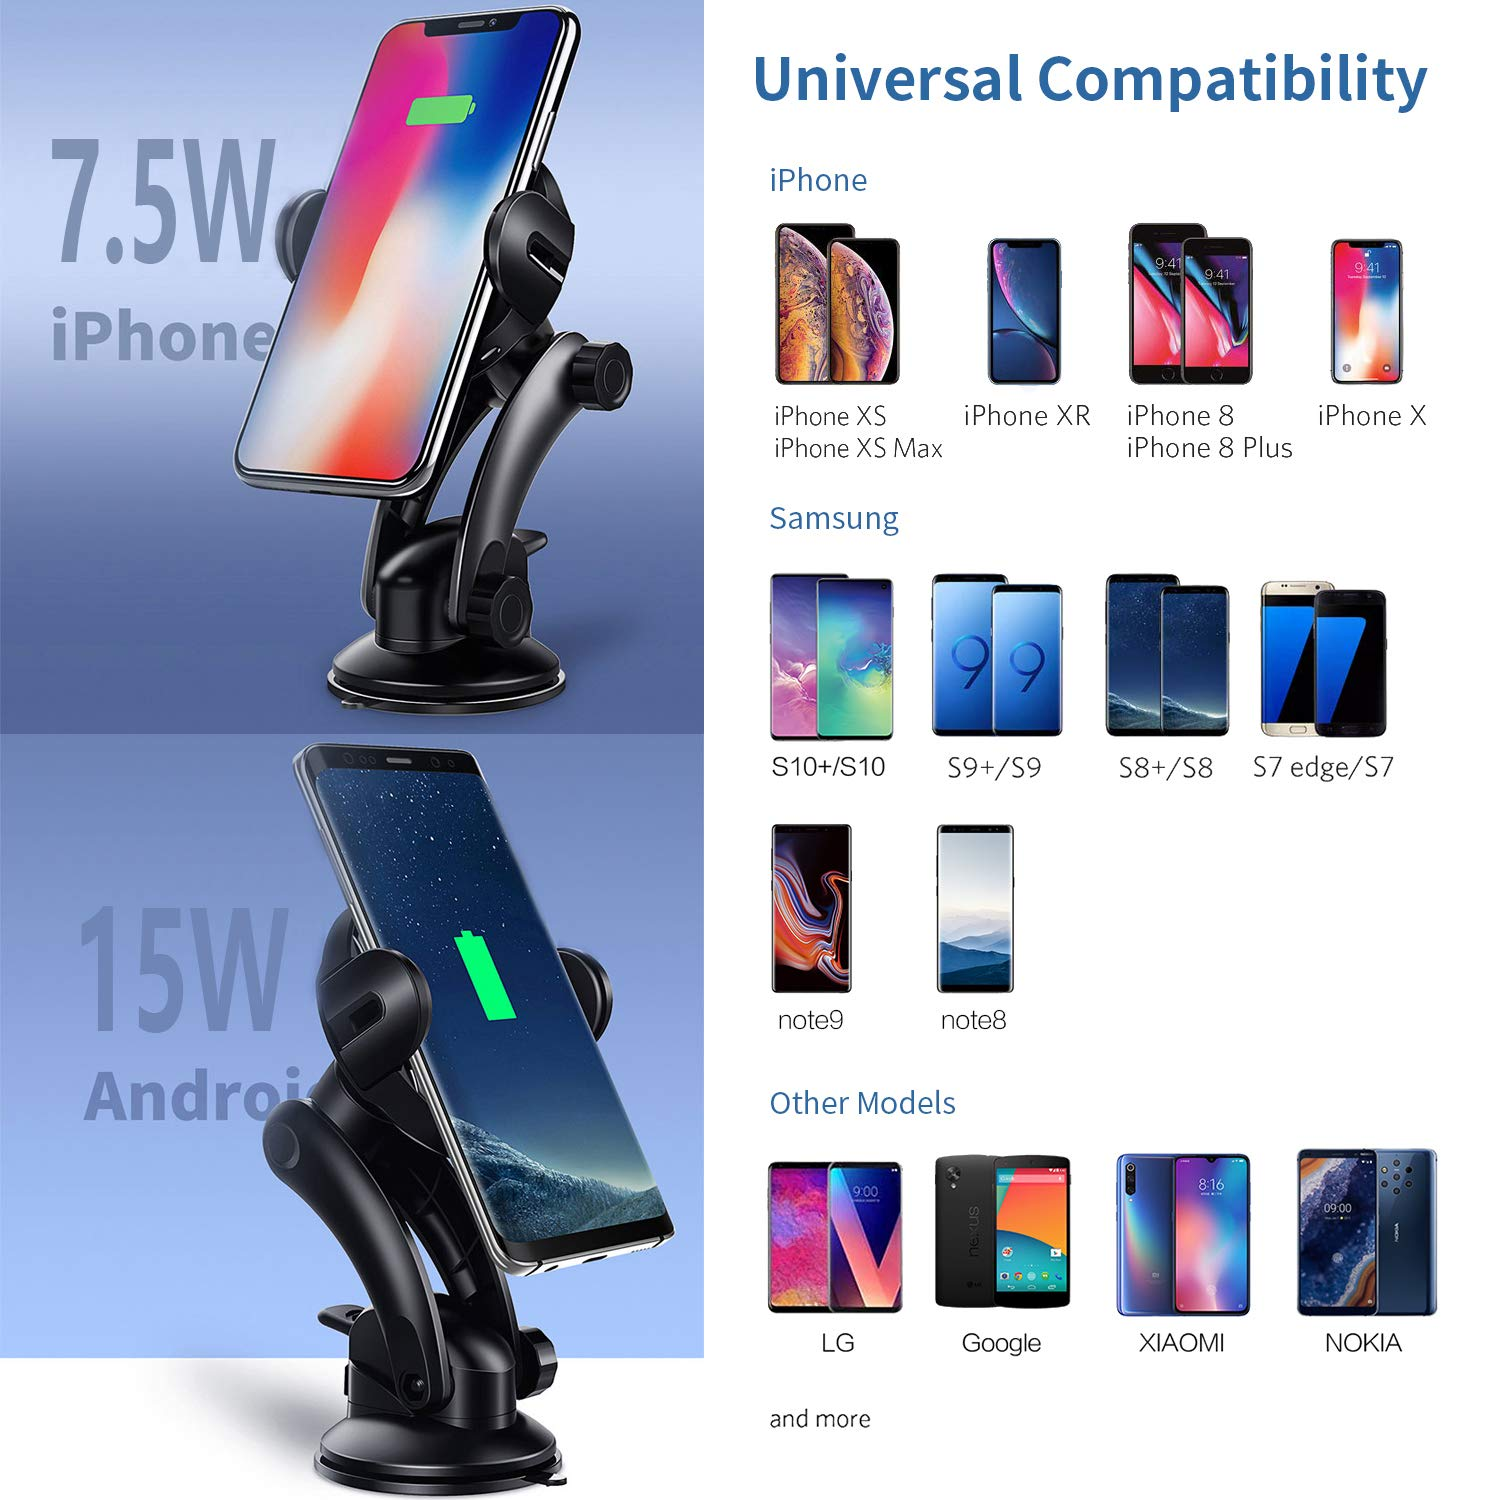 KOAKUMA Wireless Car Charger Mount, Automatic Clamping Car Mount Air Vent Phone Holder with 15W QI Fast Charging Compatible with iPhone X/XS Max/XS/XR/8/8 Plus, Samsung Galaxy S10/S10+/S9/S9+/Note 9/8 by KOAKUMA (Image #4)